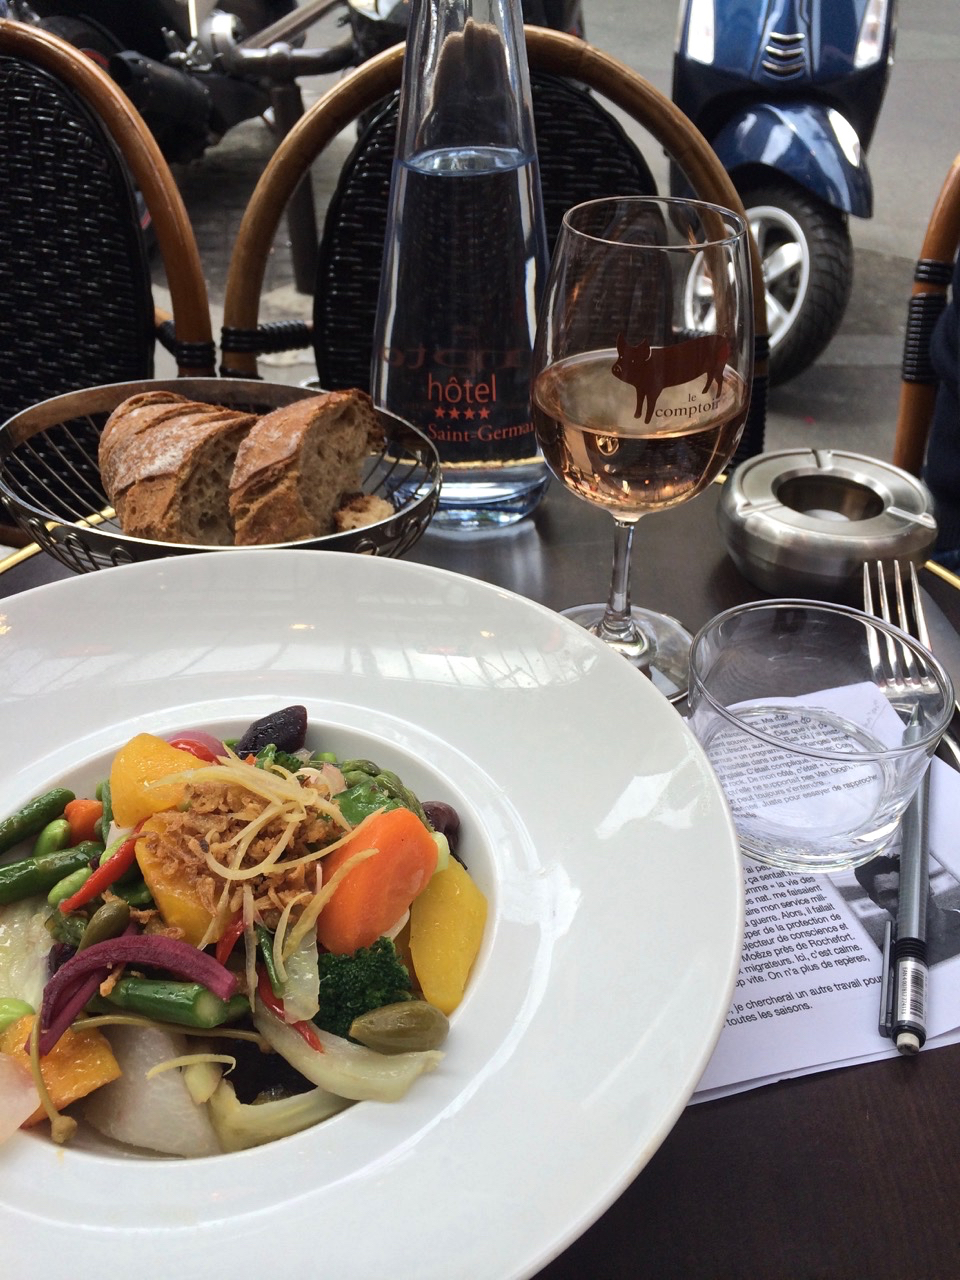 My Favorite Lunch at Le Comptoir  (photo by Lisa Michaux)